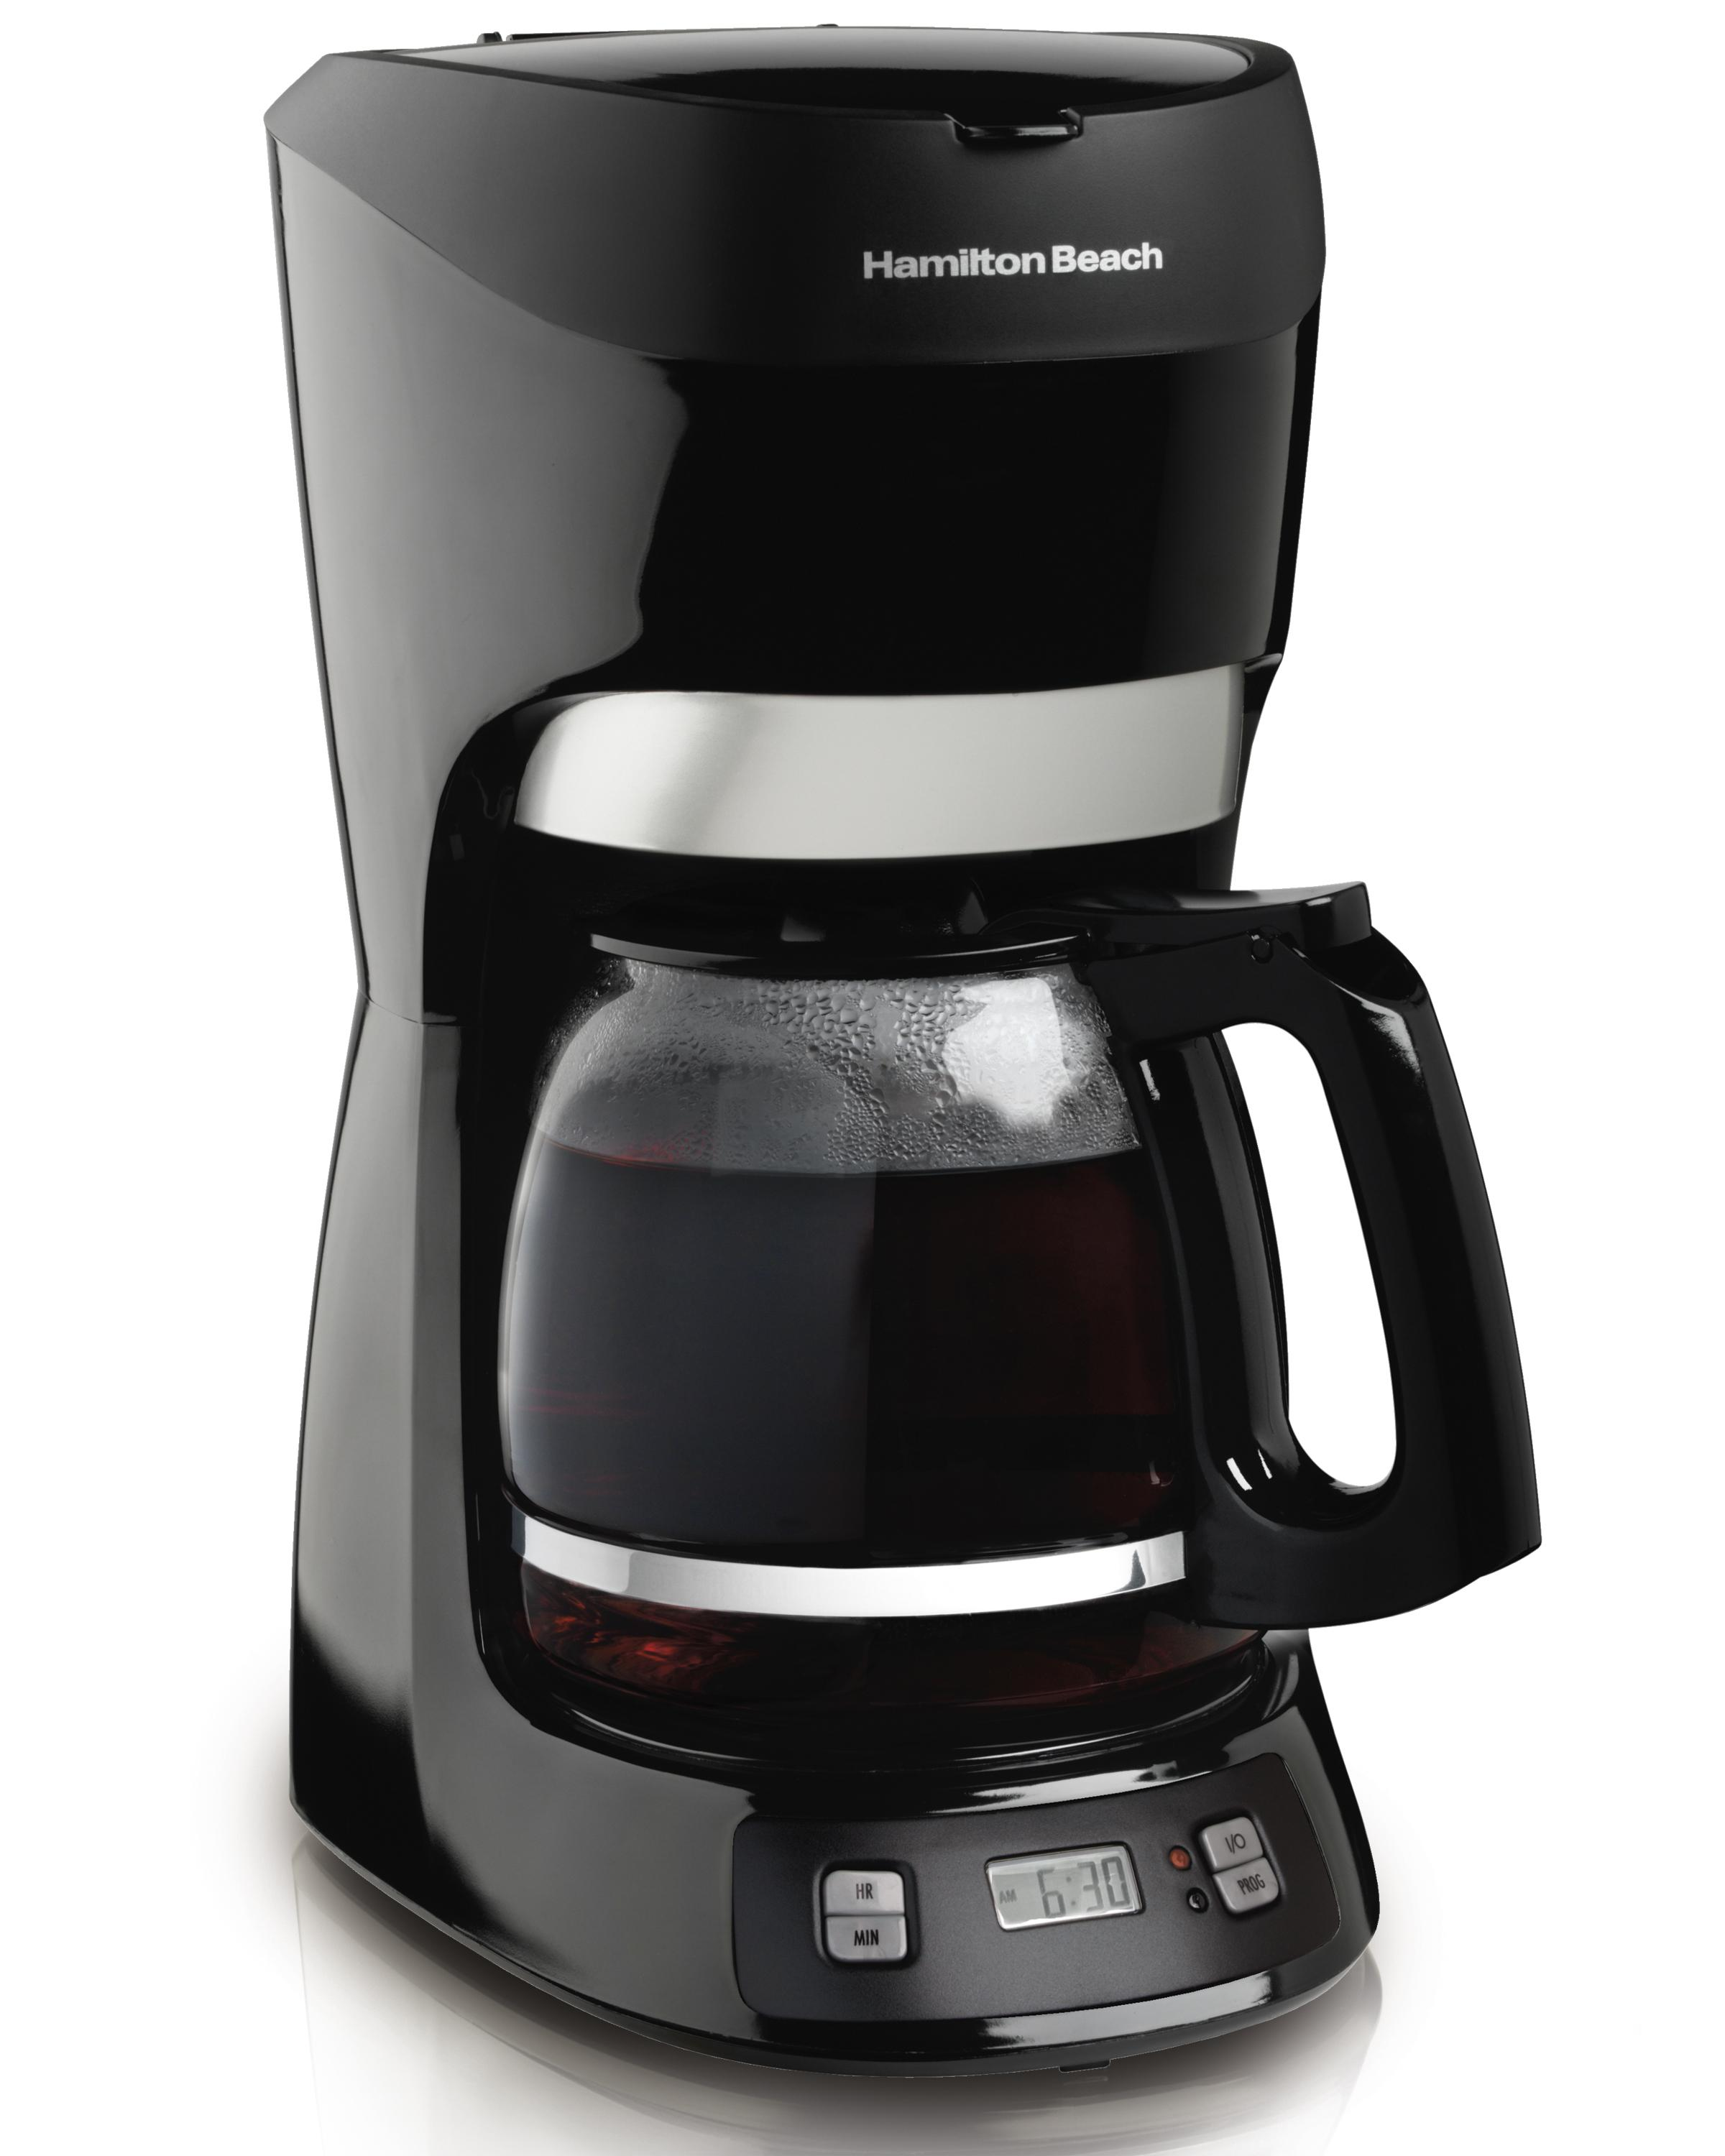 Hamilton beach 12 cup coffee maker with Coffee maker brands